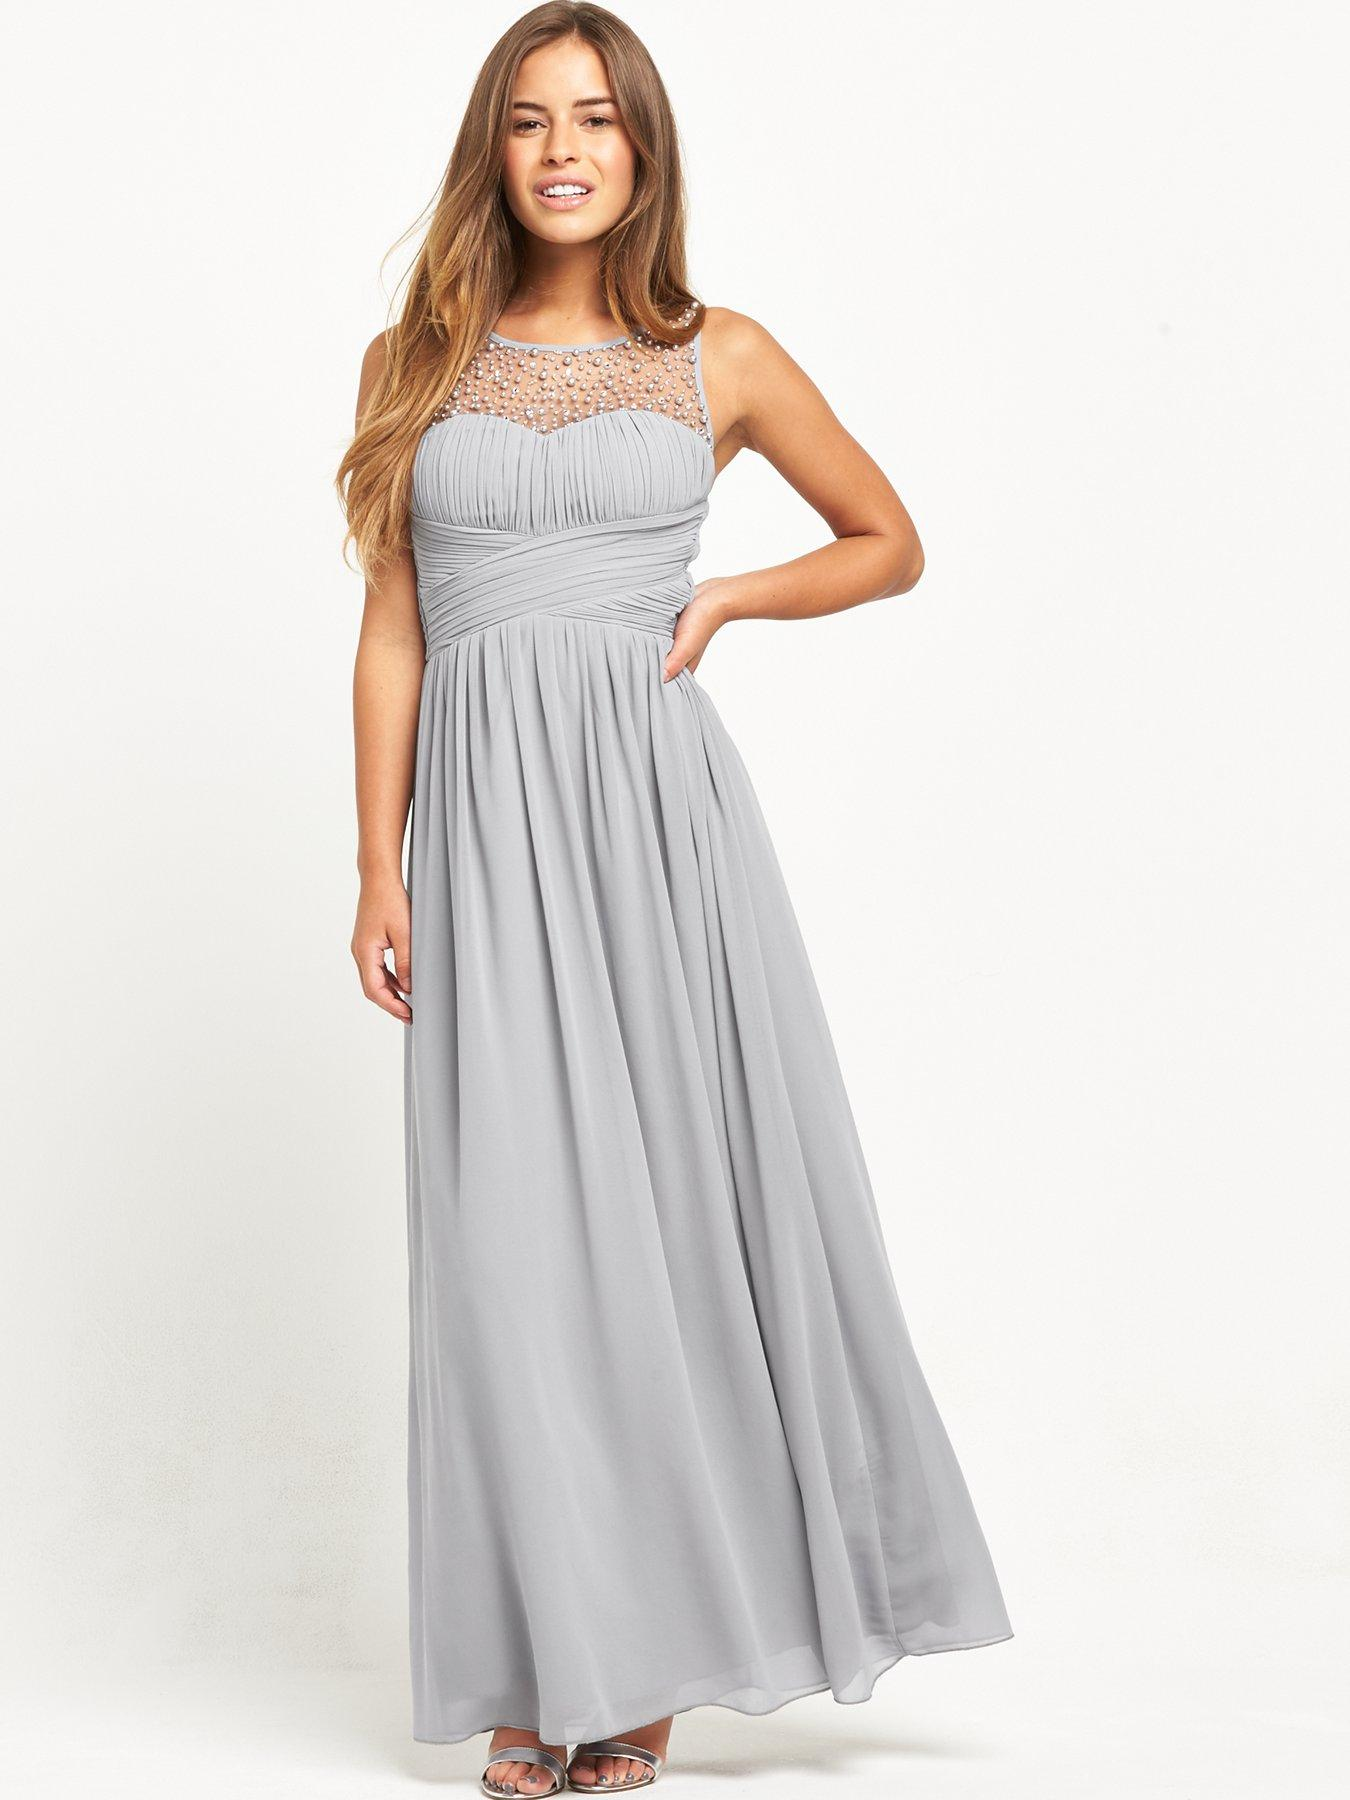 Littlewoods bridesmaid dresses gallery braidsmaid dress littlewoods bridesmaid dresses uk gallery braidsmaid dress littlewoods bridesmaid dresses uk choice image braidsmaid dress littlewoods ombrellifo Image collections